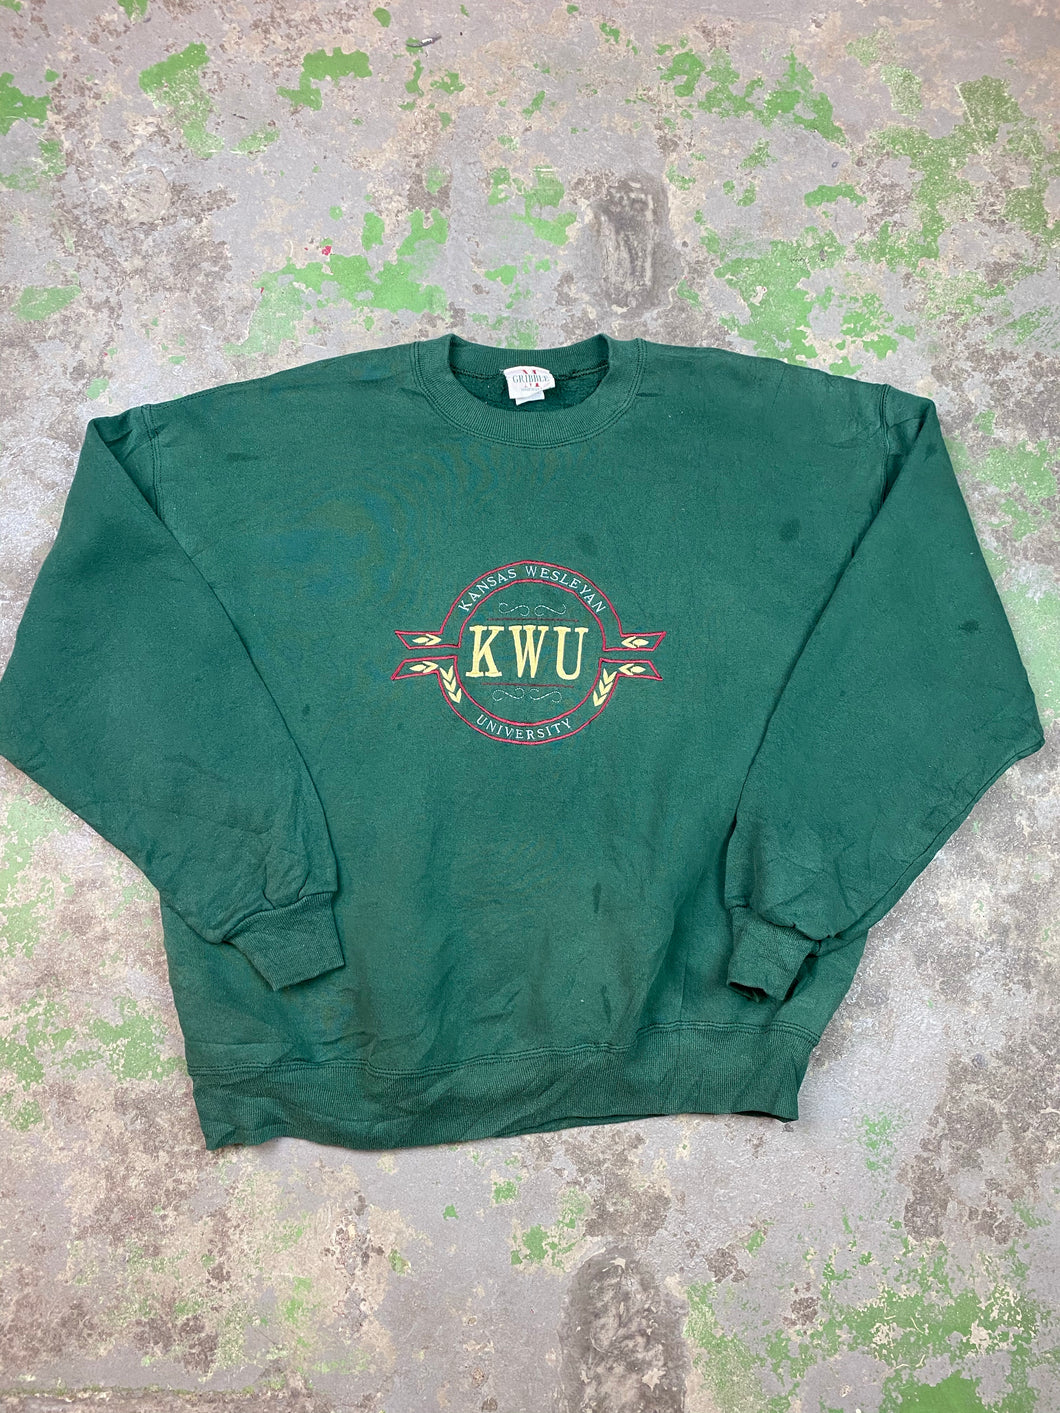 KWU embroidered crewneck